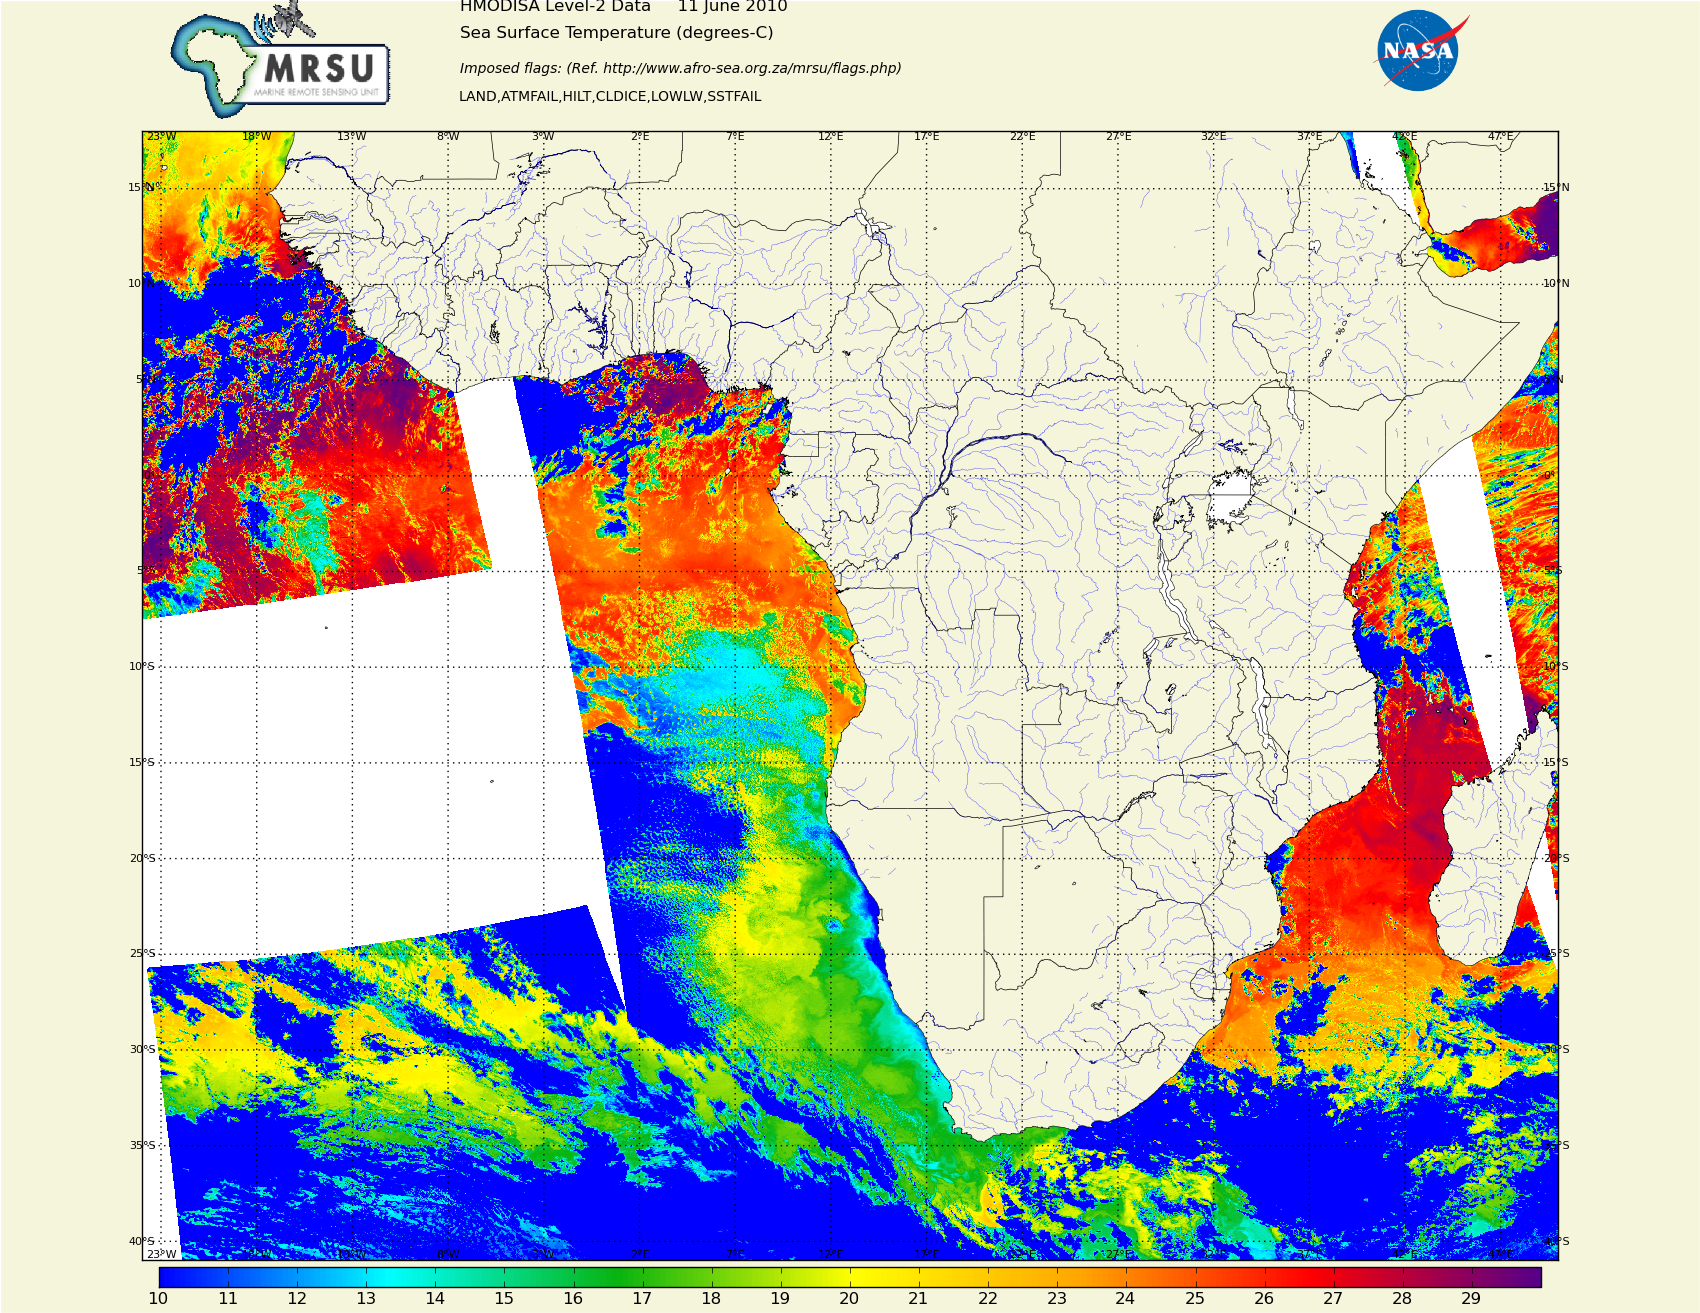 Centre for High performance computing in Cape Town /static/South_Africa/Africa_MODIS_sst_20100611.png